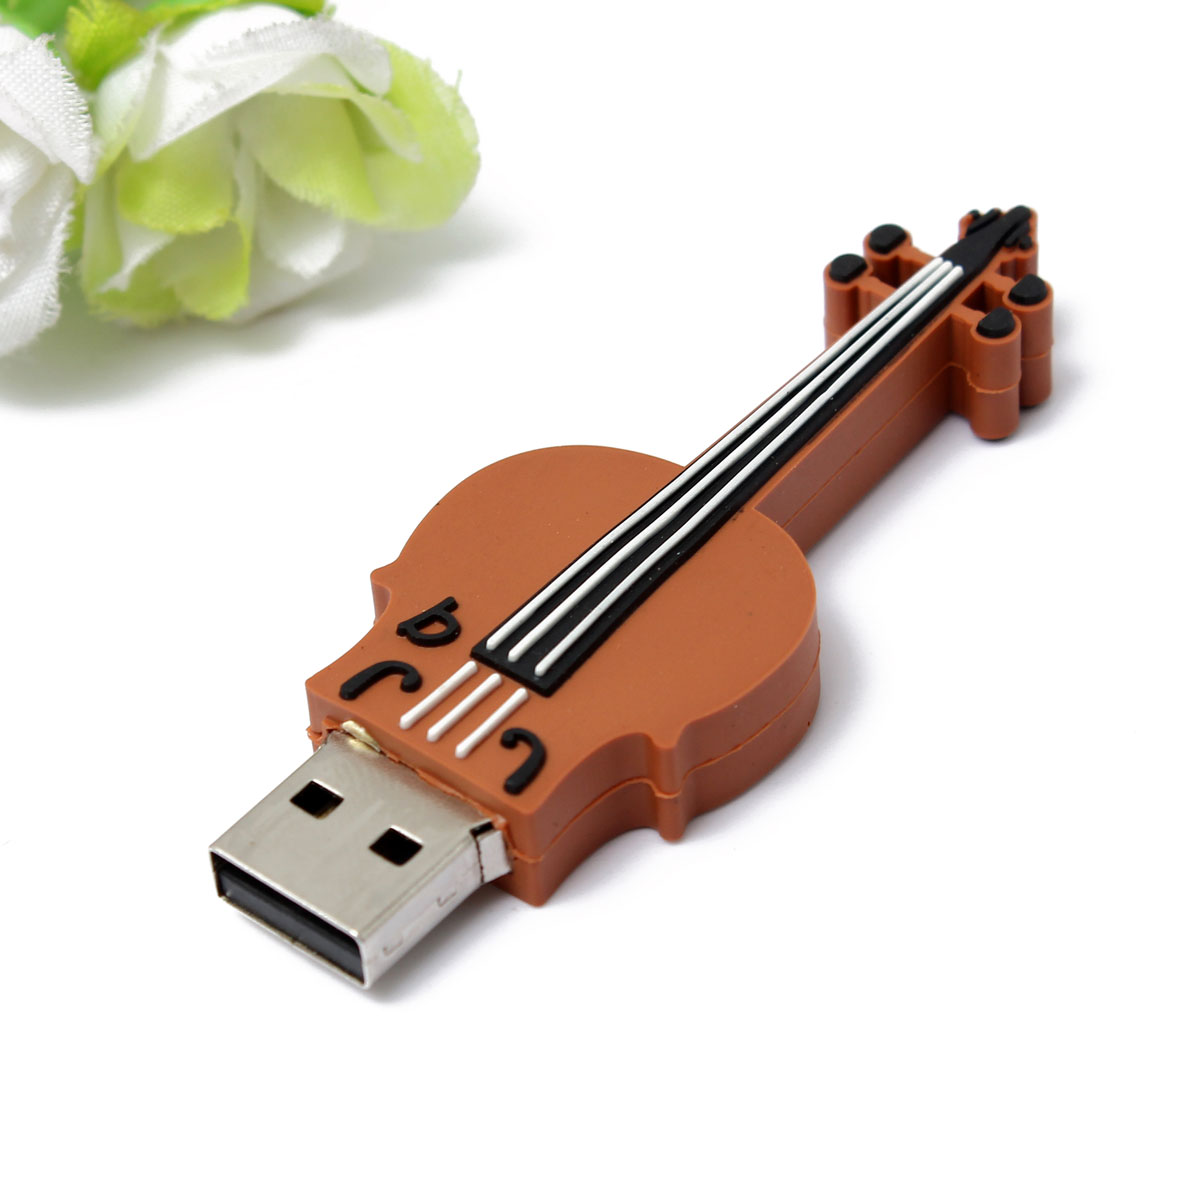 16GB Musical Instrument Violin Usb 2.0 Flash Drive Memory Stick Pen Drive Flash Memory Card Fashion Pendrive